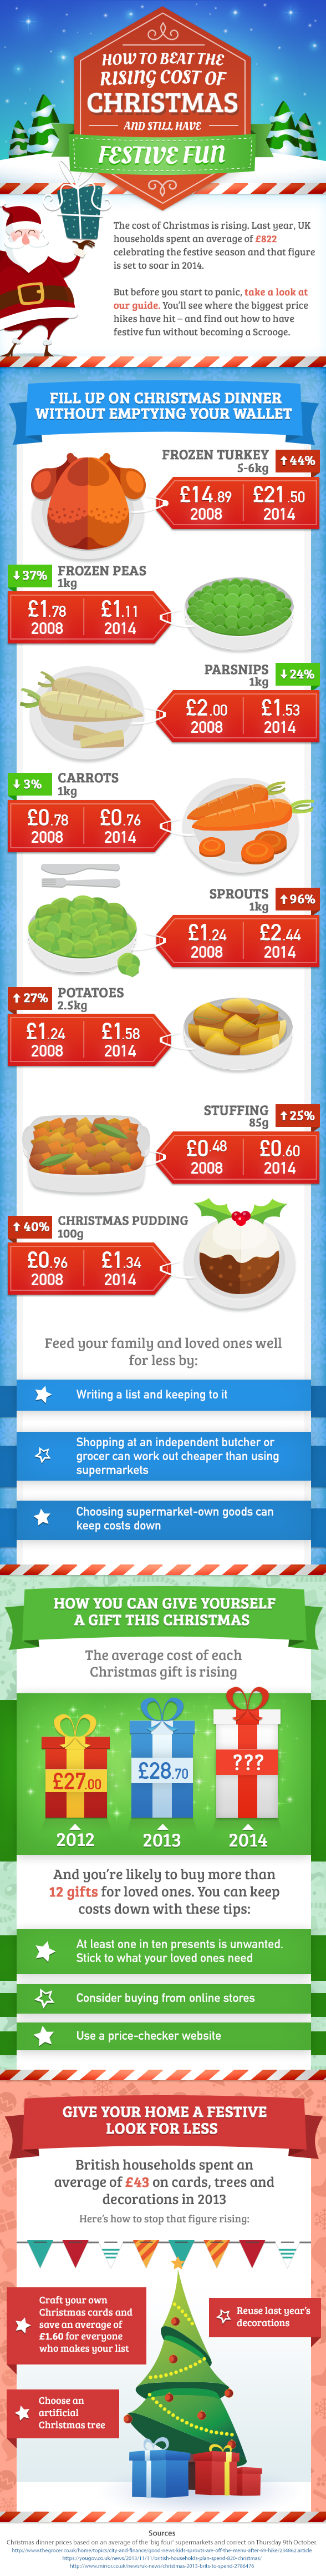 How To Beat the Rising Cost of Christmas & Still Have Festive Fun